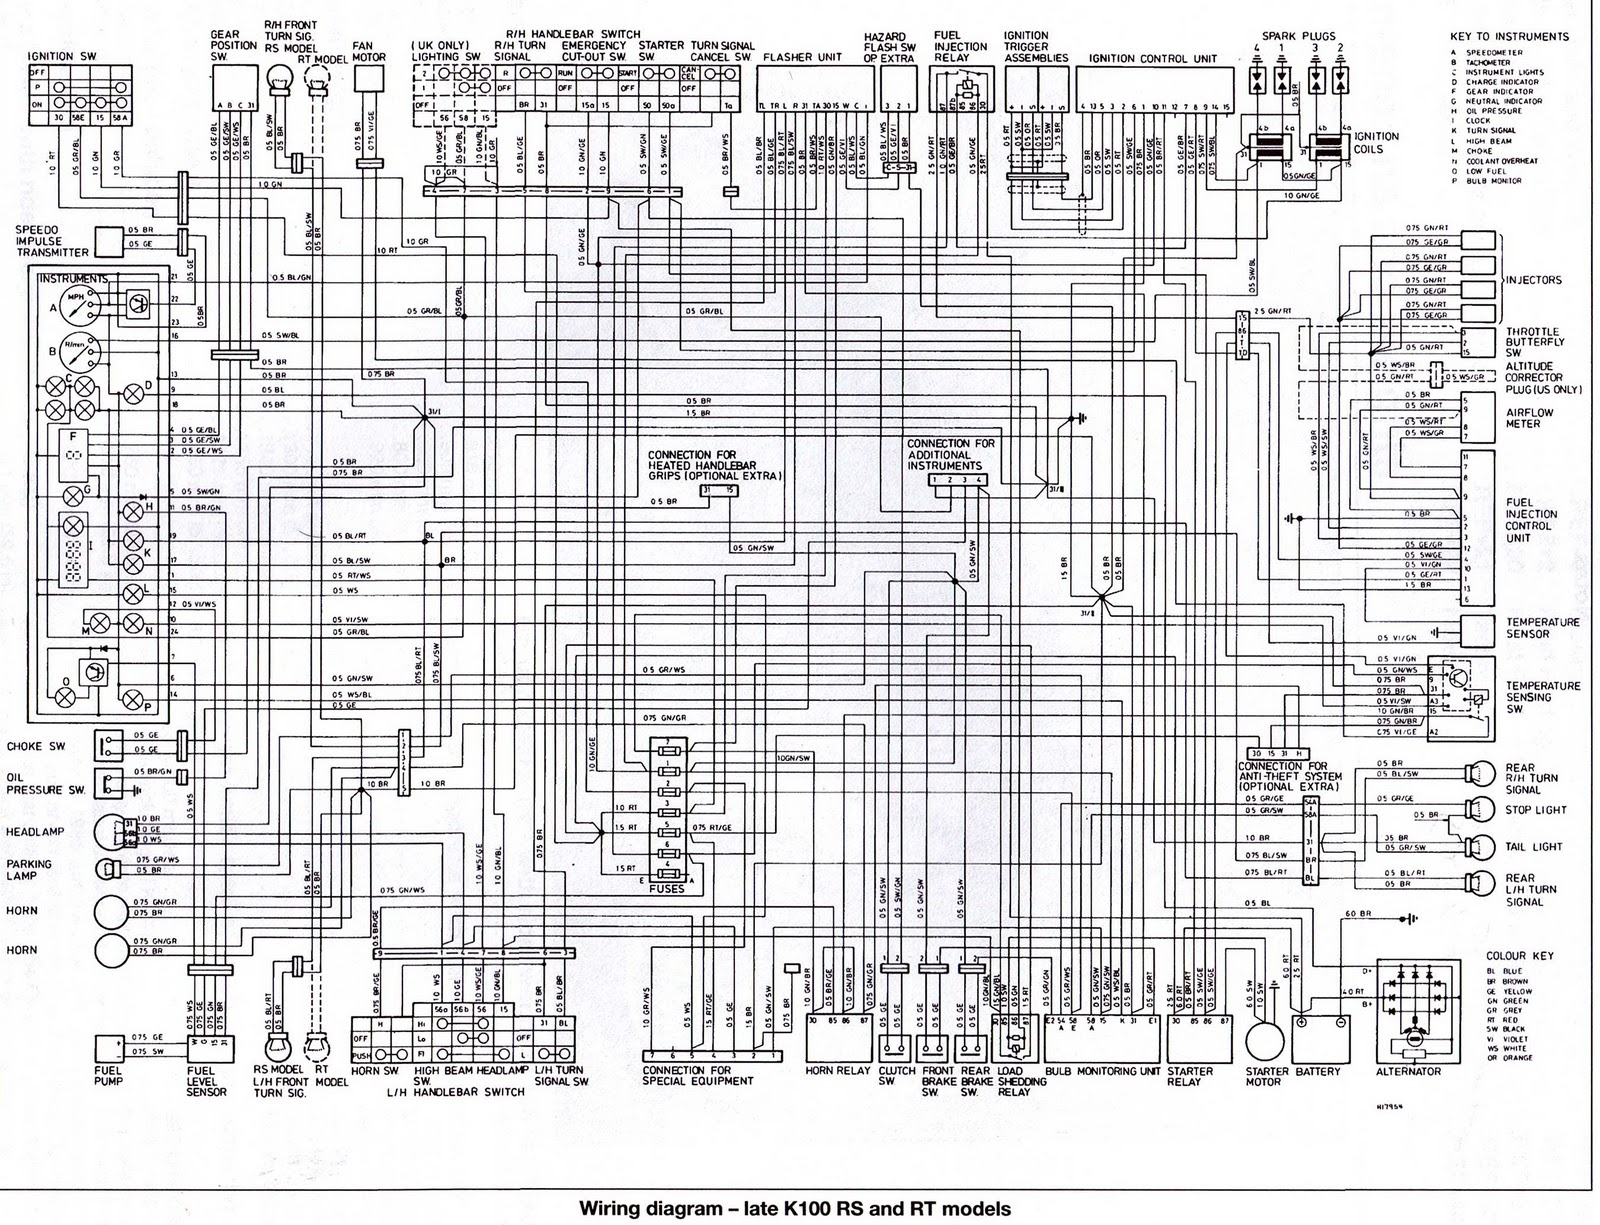 BMW+KR100RS RT+Wiring+Diagram bmw e38 wiring diagram bmw wds download \u2022 free wiring diagrams bmw e38 radio wiring diagram at sewacar.co